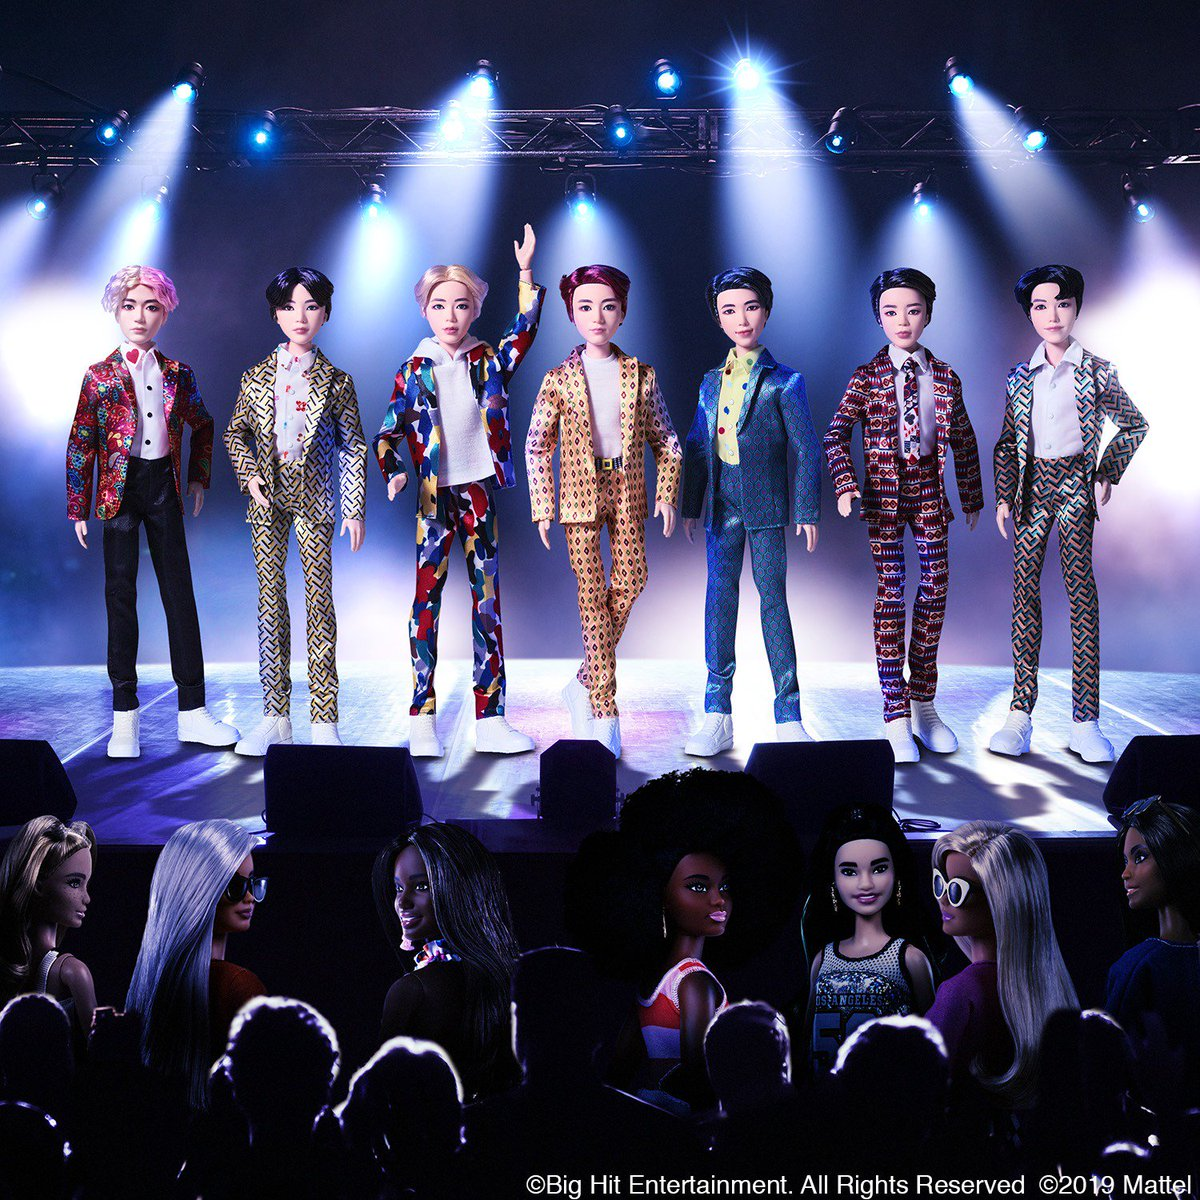 Friends ✅ BTS ✅Best night ever ✅It's nearly showtime for Mattel's #BTS dolls, now available for pre-order at retailers worldwide! #BTSxMattel #BTSdollsofficial